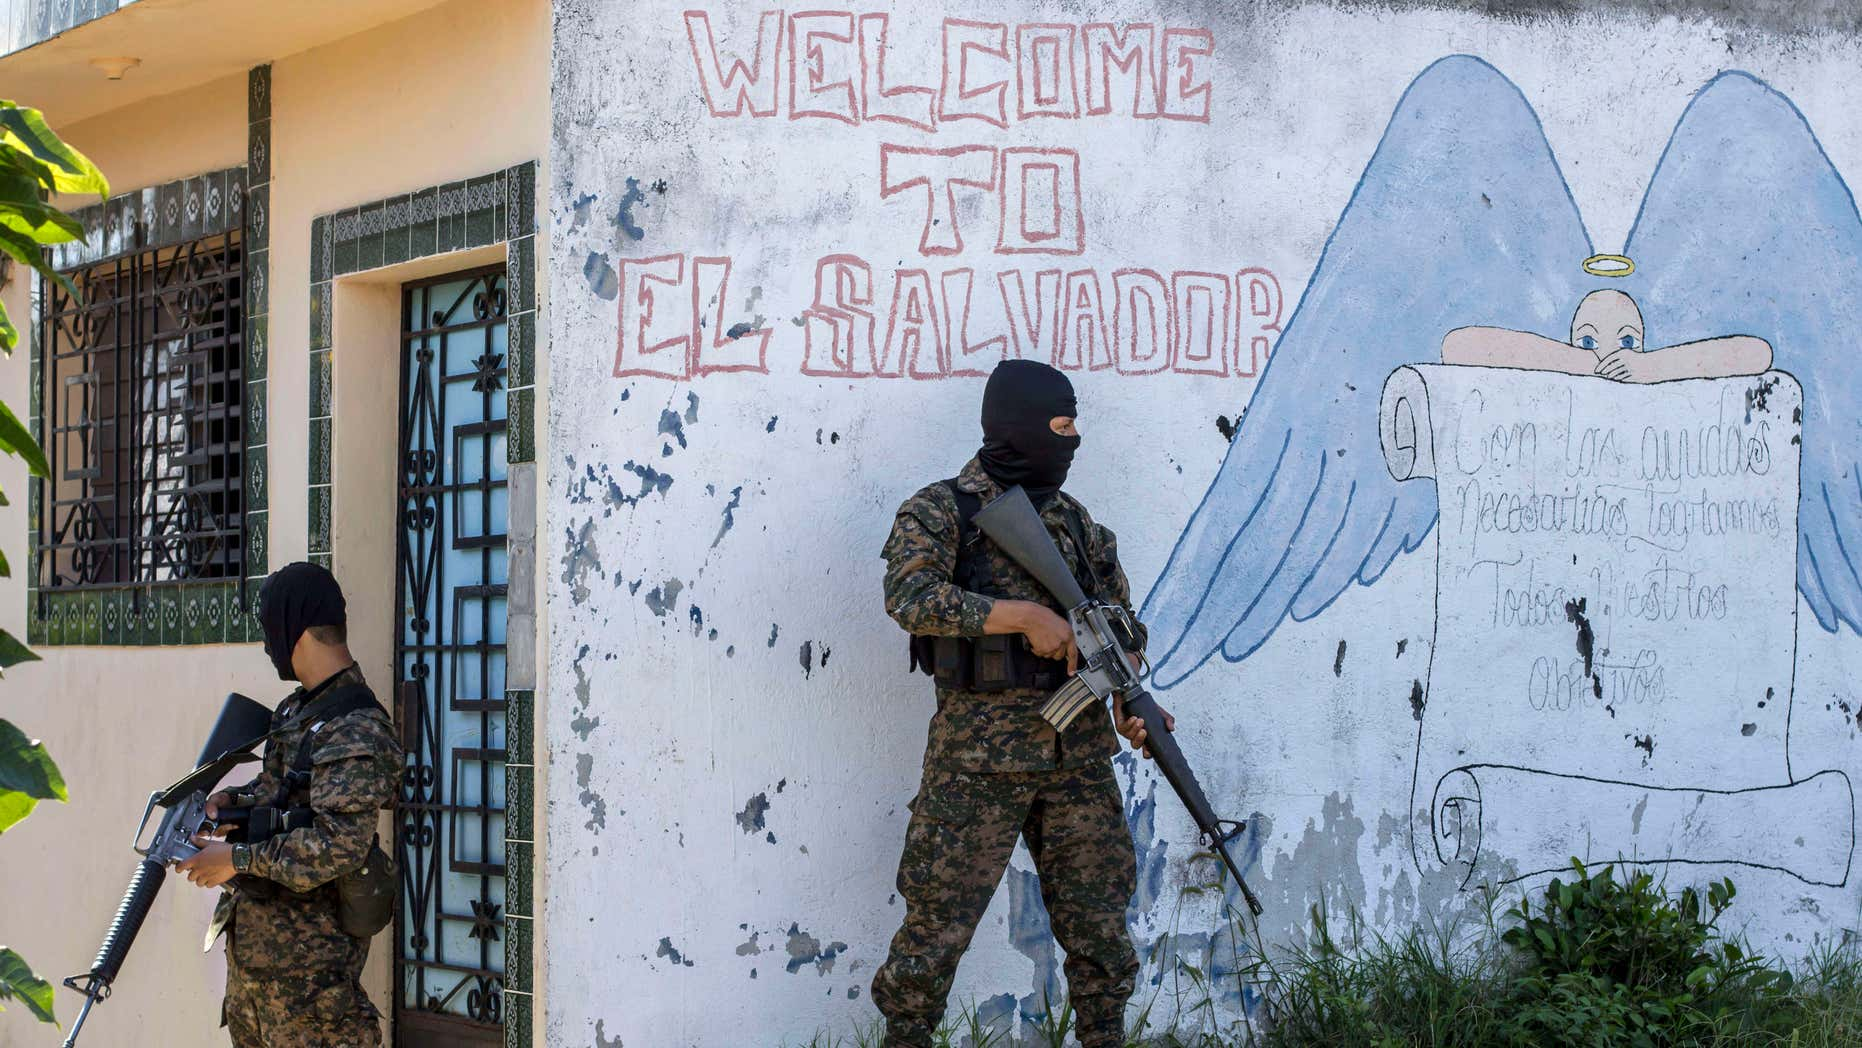 FILE - In this Aug. 31, 2015 file photo, soldiers guard a corner in a gang-controlled neighborhood in Ilopango, El Salvador.